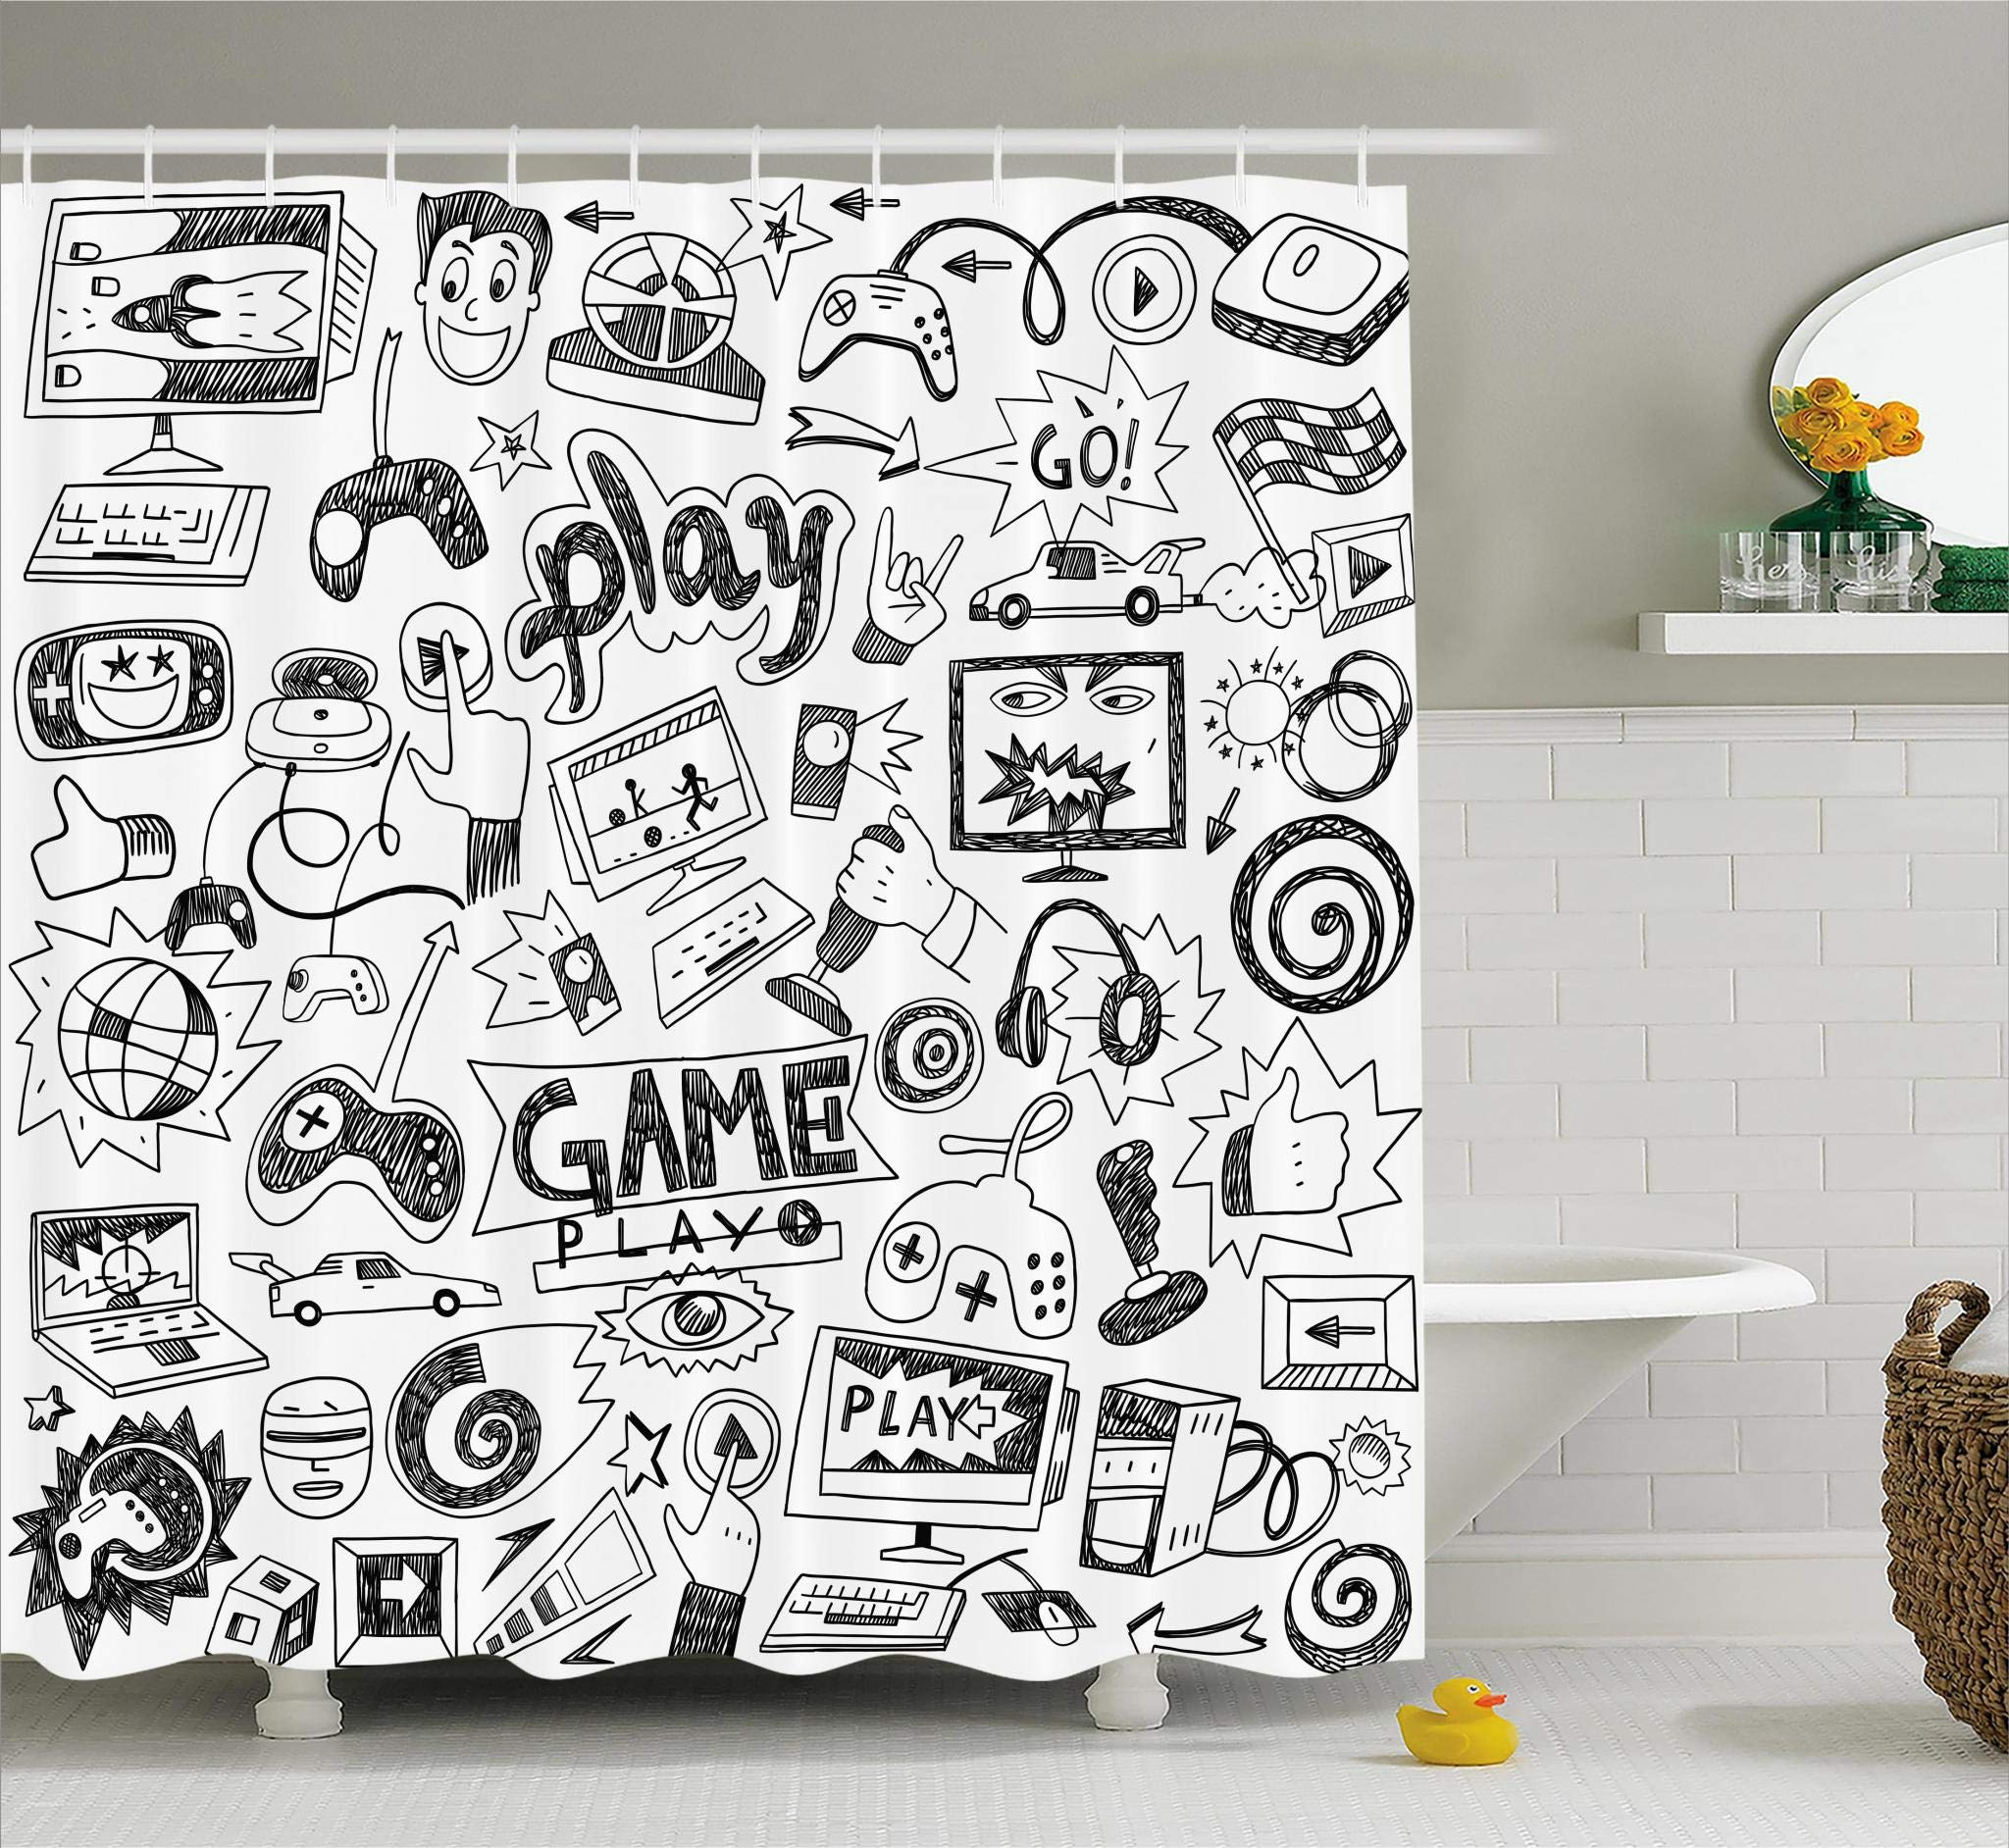 Ambesonne Video Games Shower Curtain Set, Black and White Sketch Style Gaming Design Racing Monitor Device Gadget Teen 90's, Fabric Bathroom Decor with Hooks, 75 Inches Long, Blak White